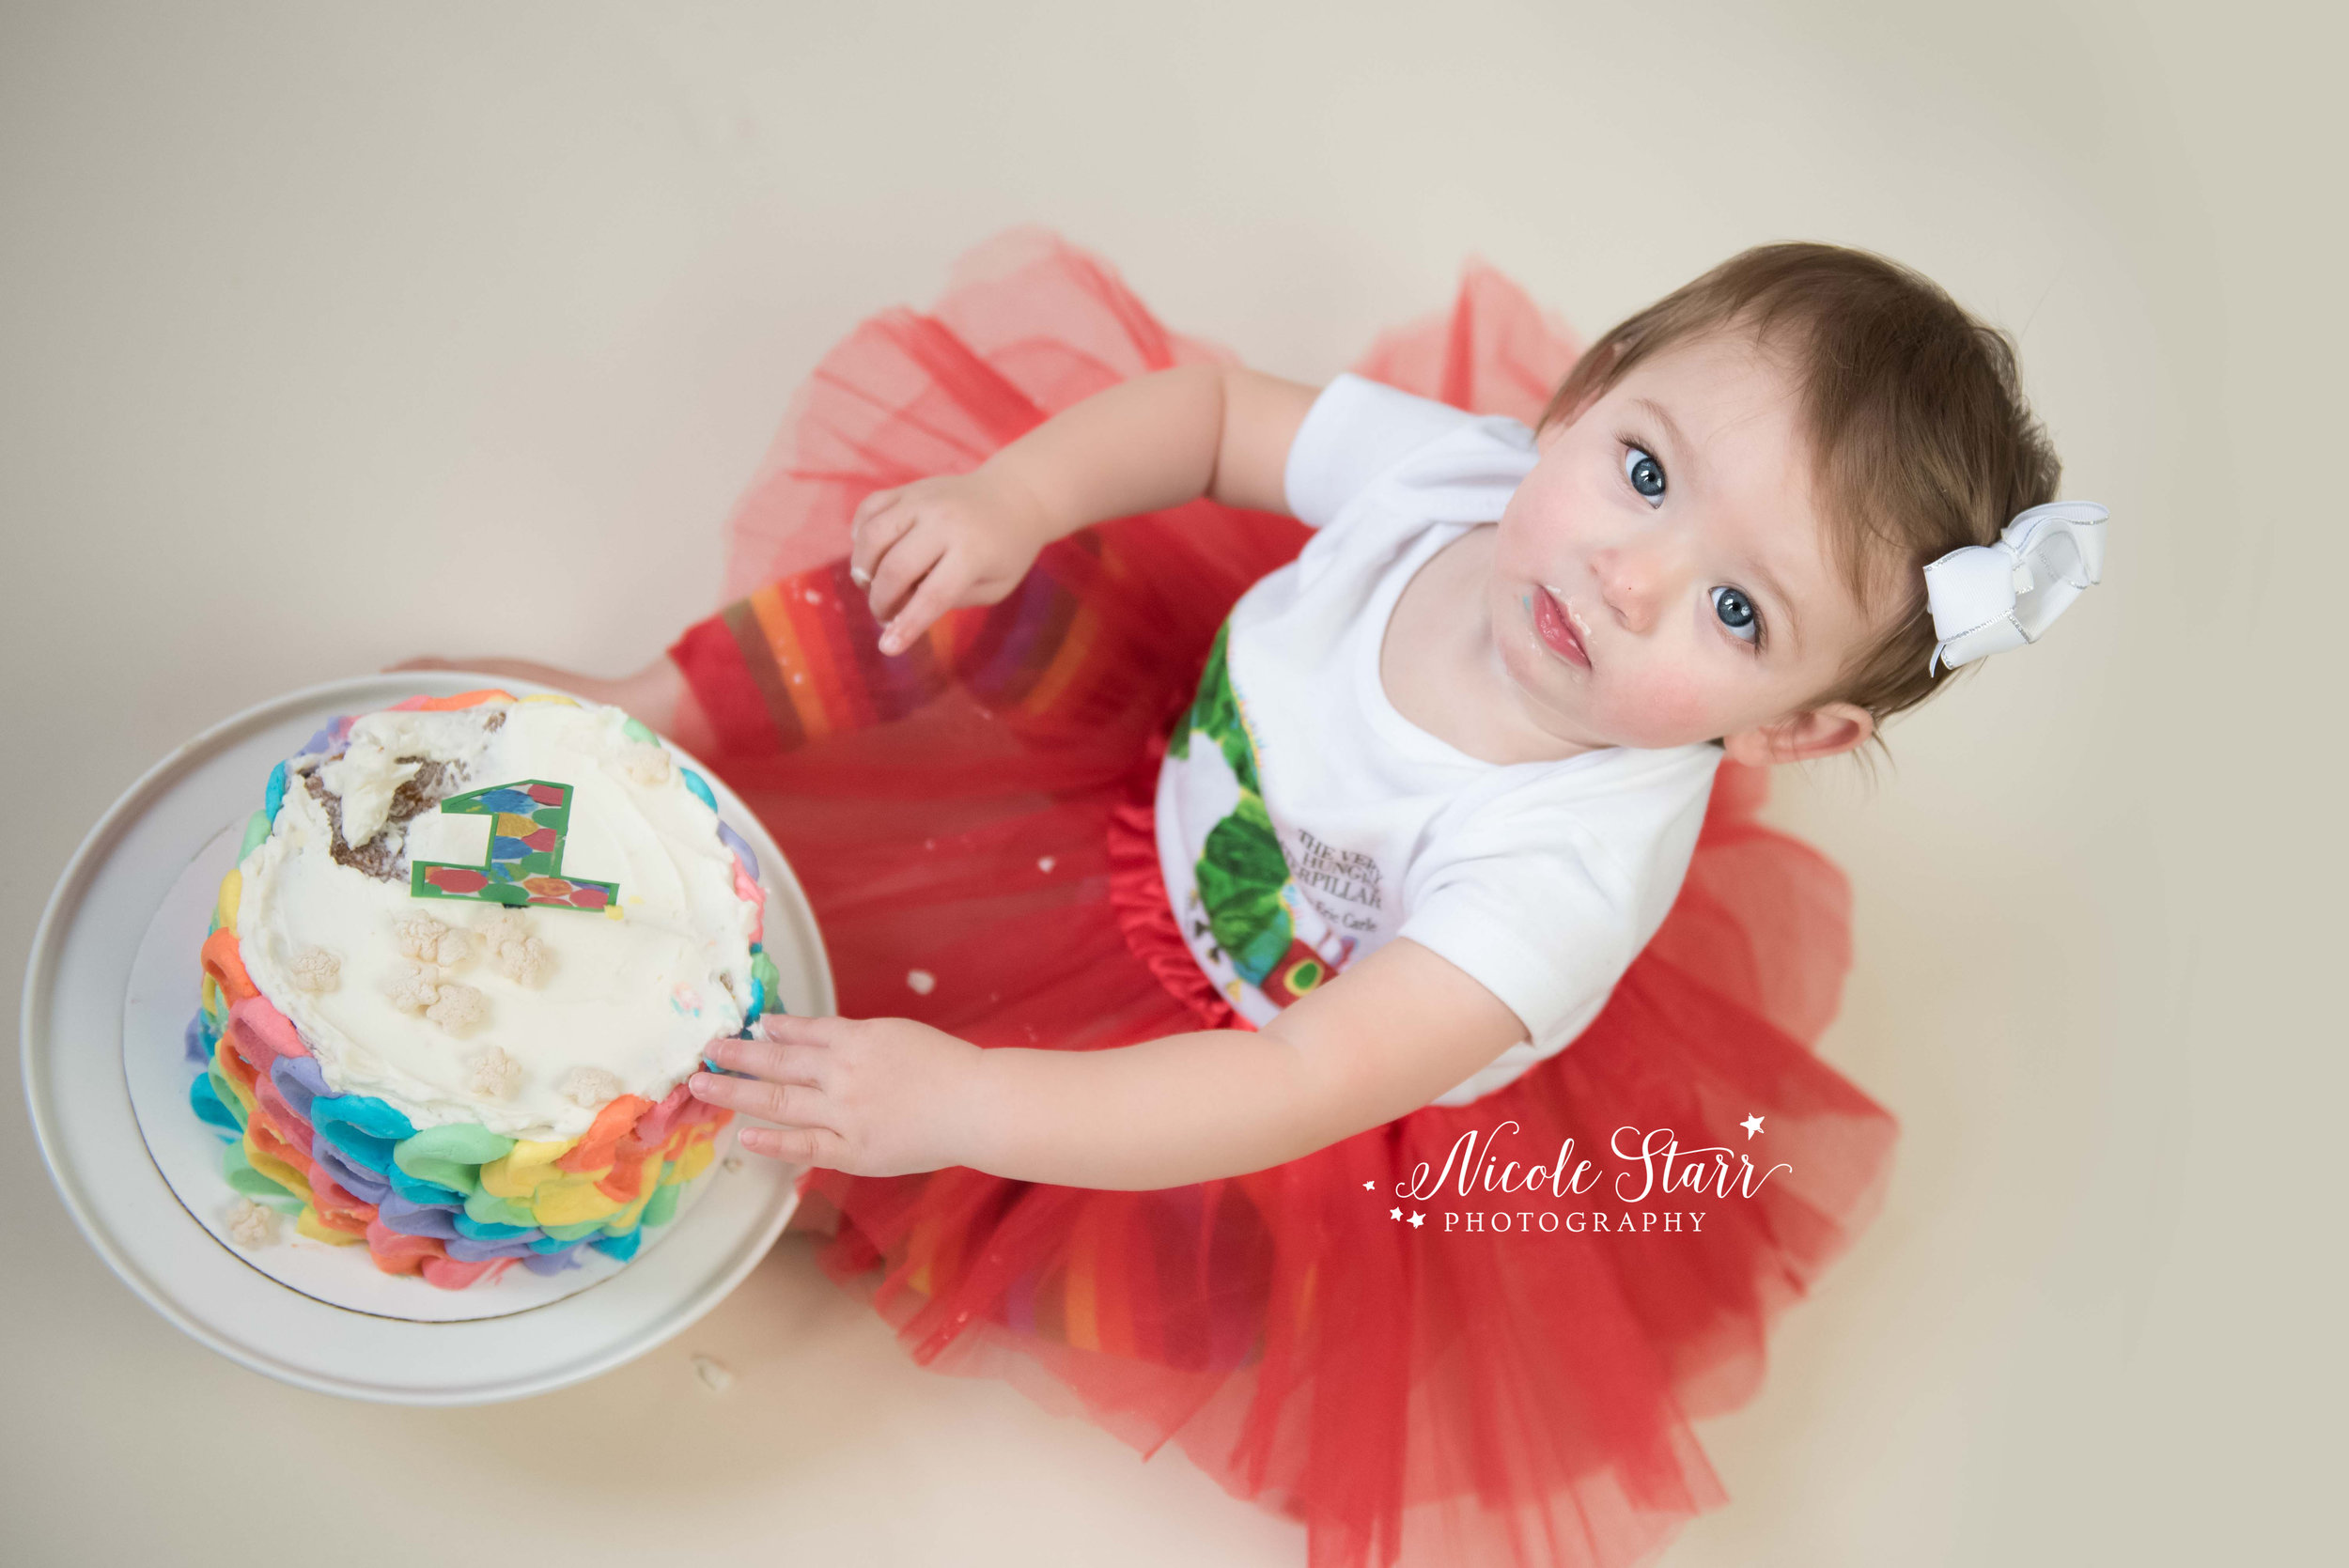 eric carle cake smash photo shoot.jpg